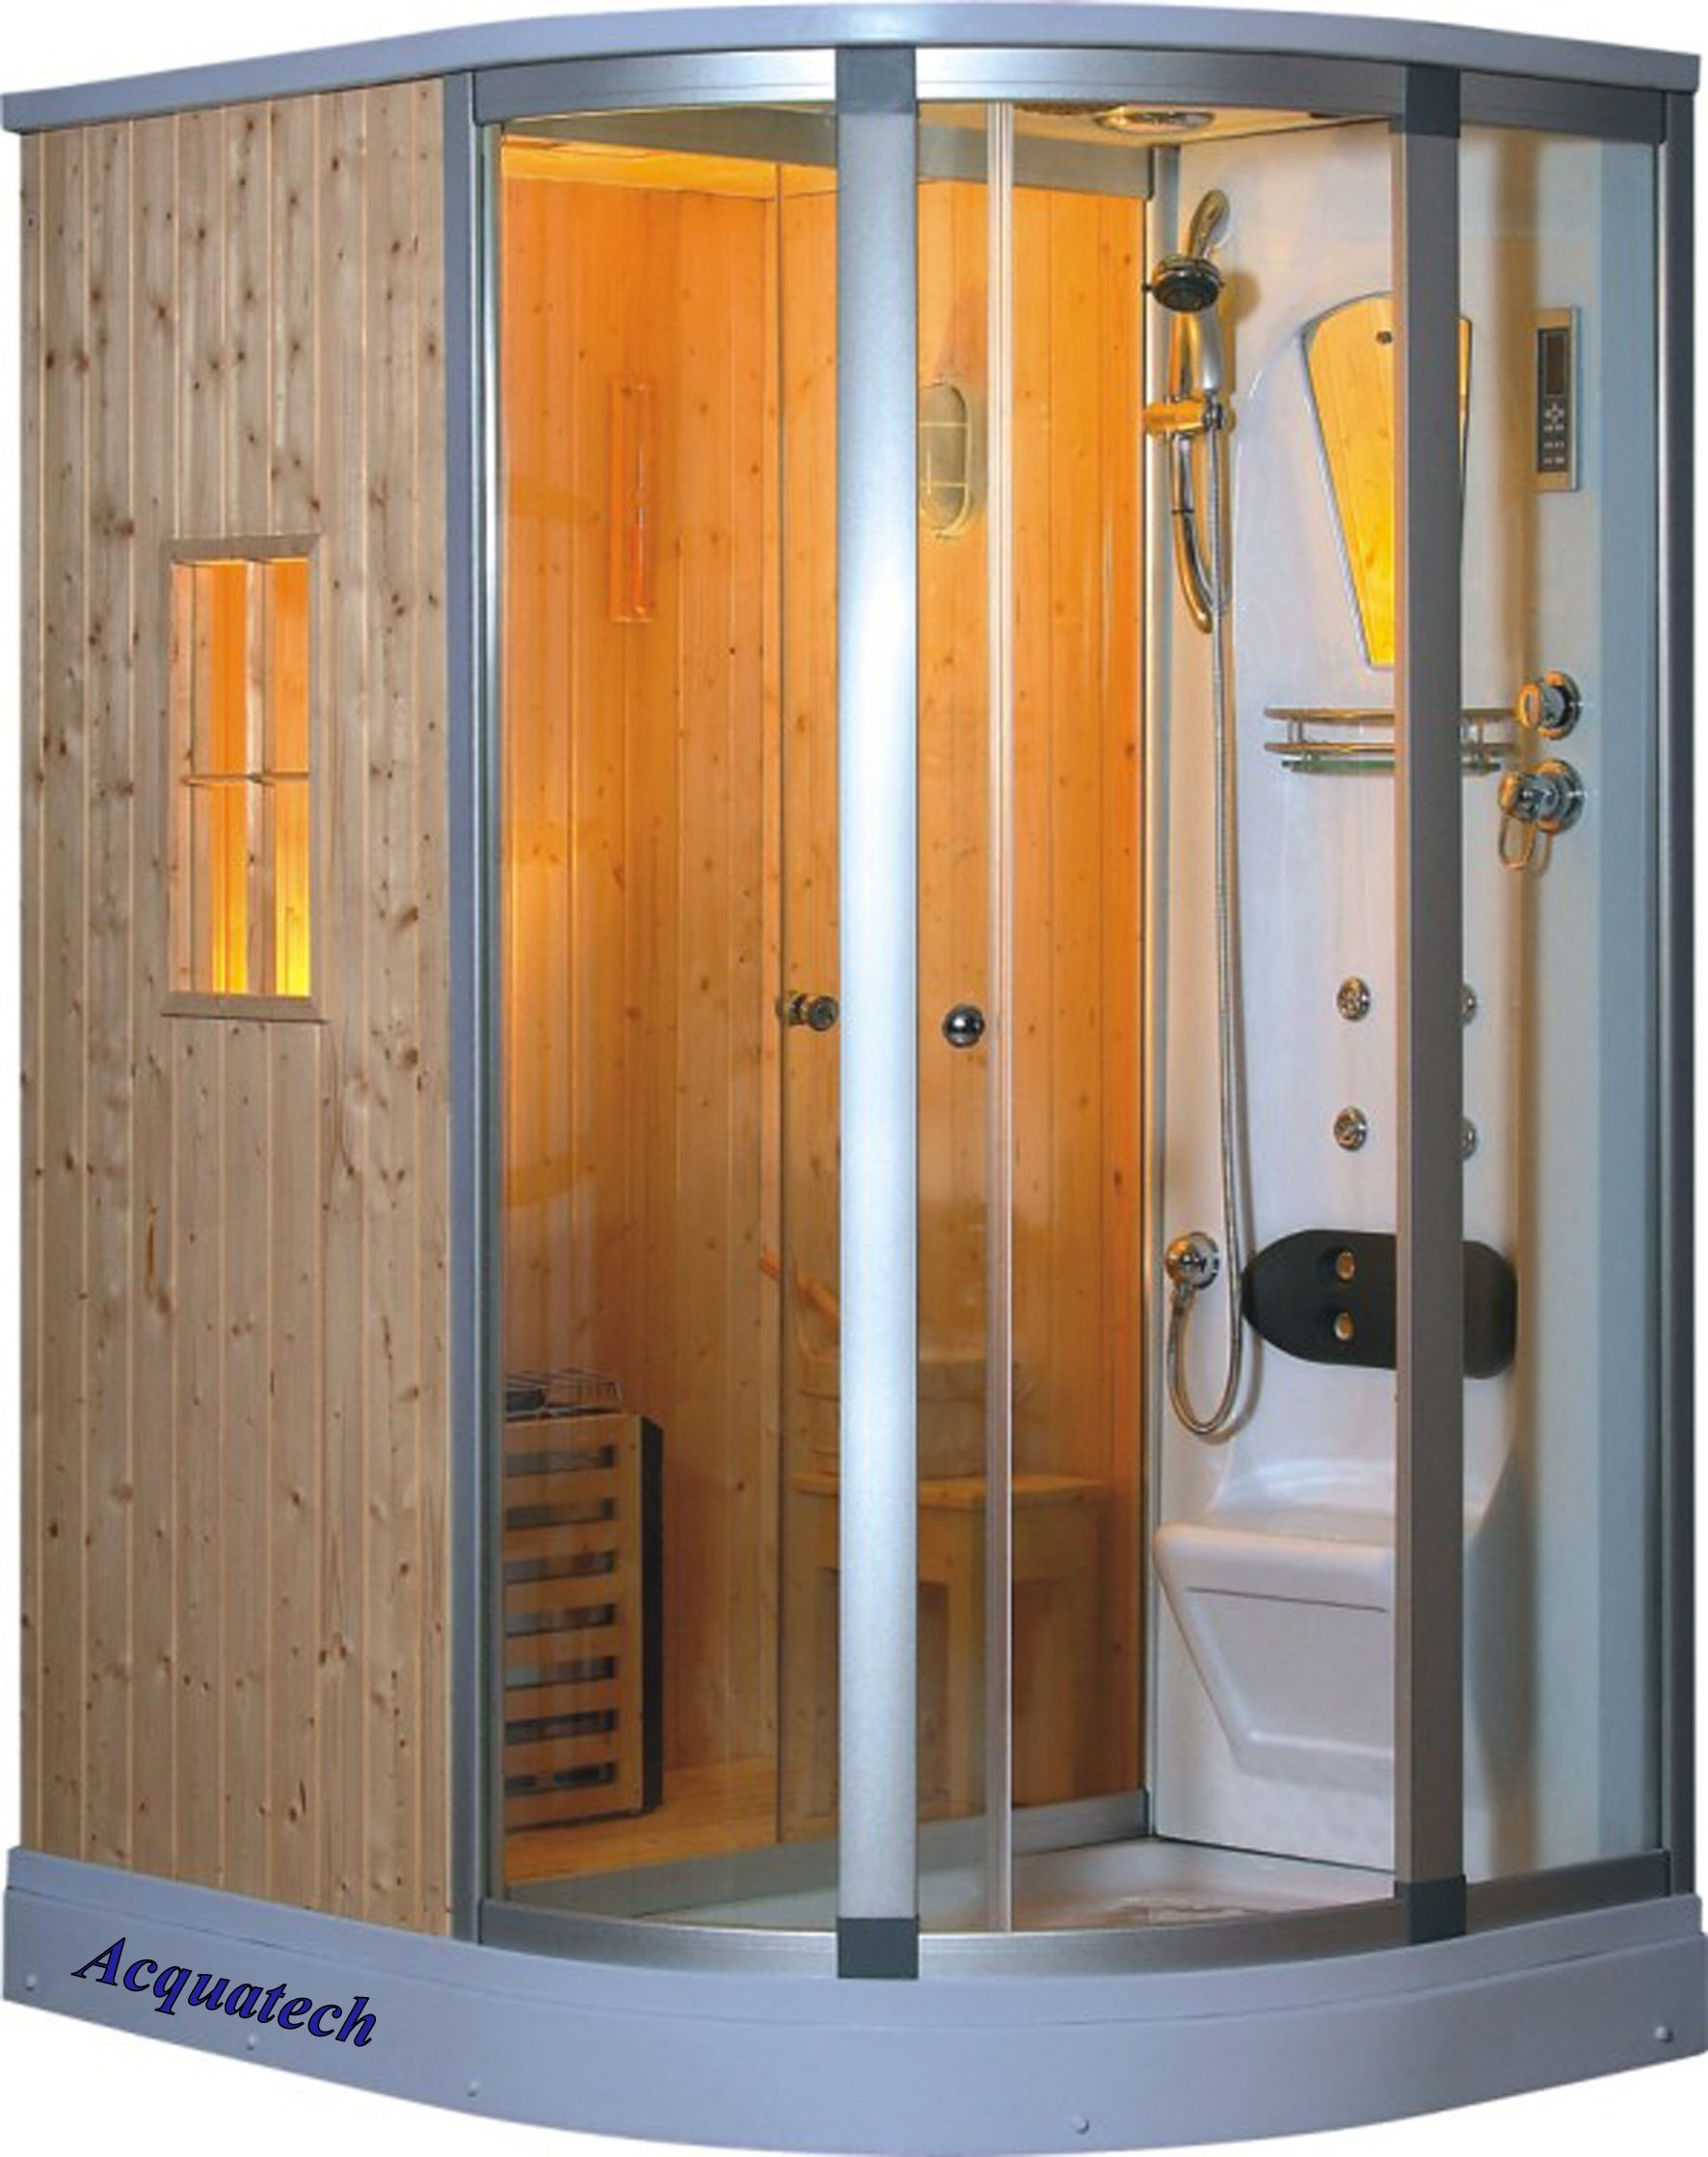 Fully Enclosed Shower www.acquatech.co  fully enclosed shower room fm radio, speaker